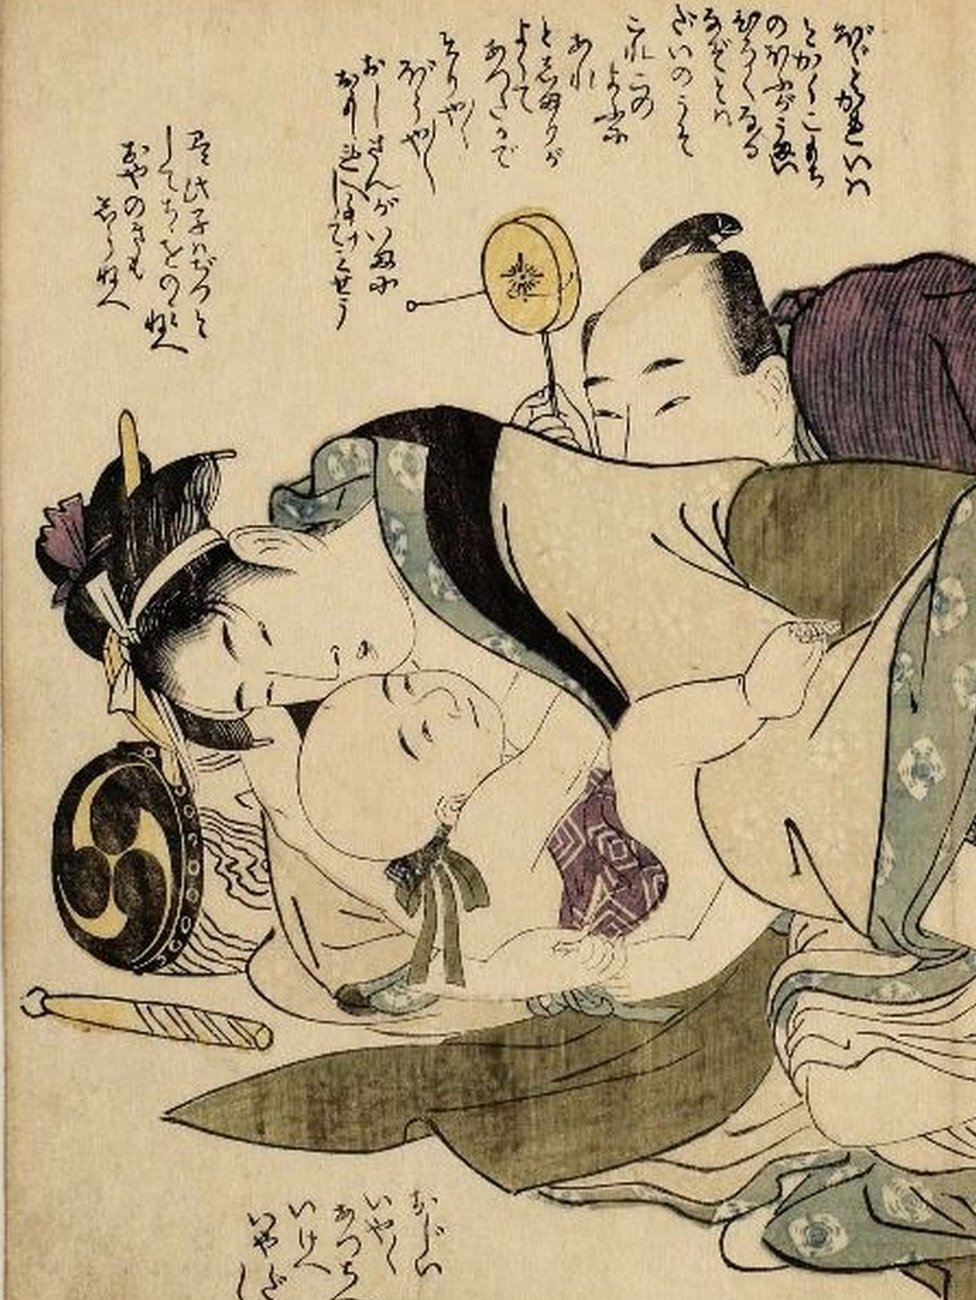 Shunga from Ehon Toko no Ume (Picture book: Plums in Bed) by Kitagawa Utamaro, Courtesy of the International Center for Japanese Studies.